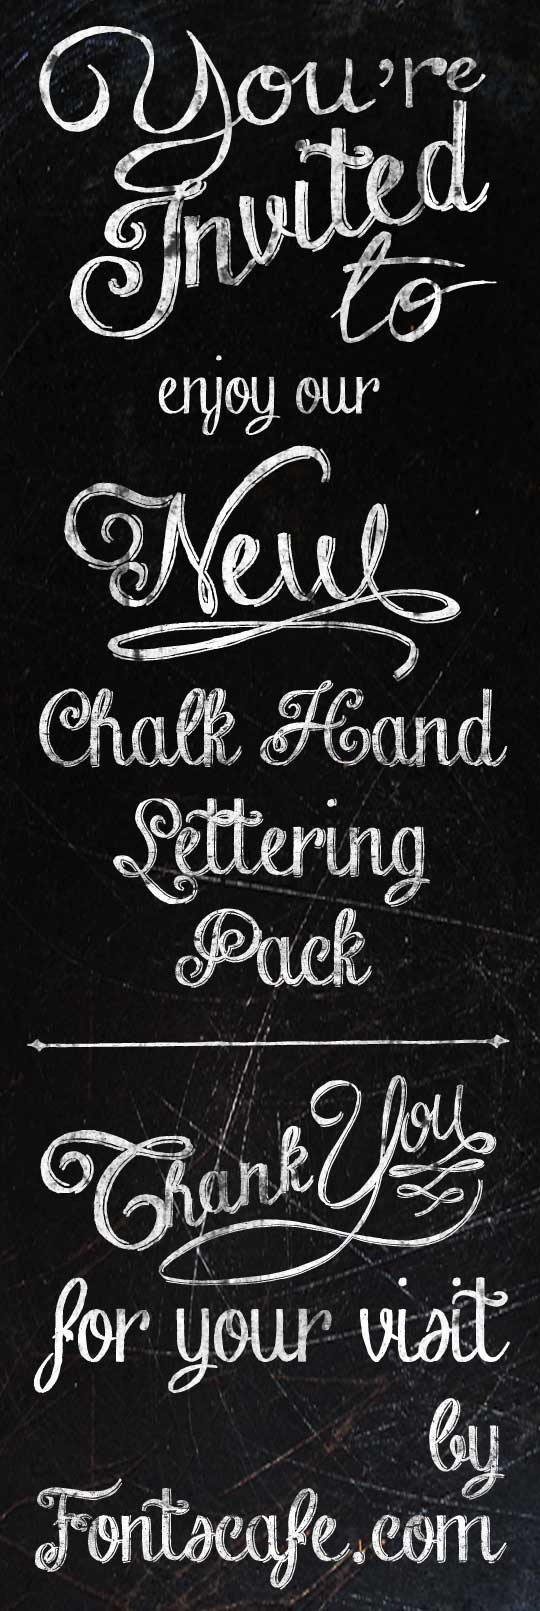 Chalk-hand-lettering-shaded_dem font by FontsCafe